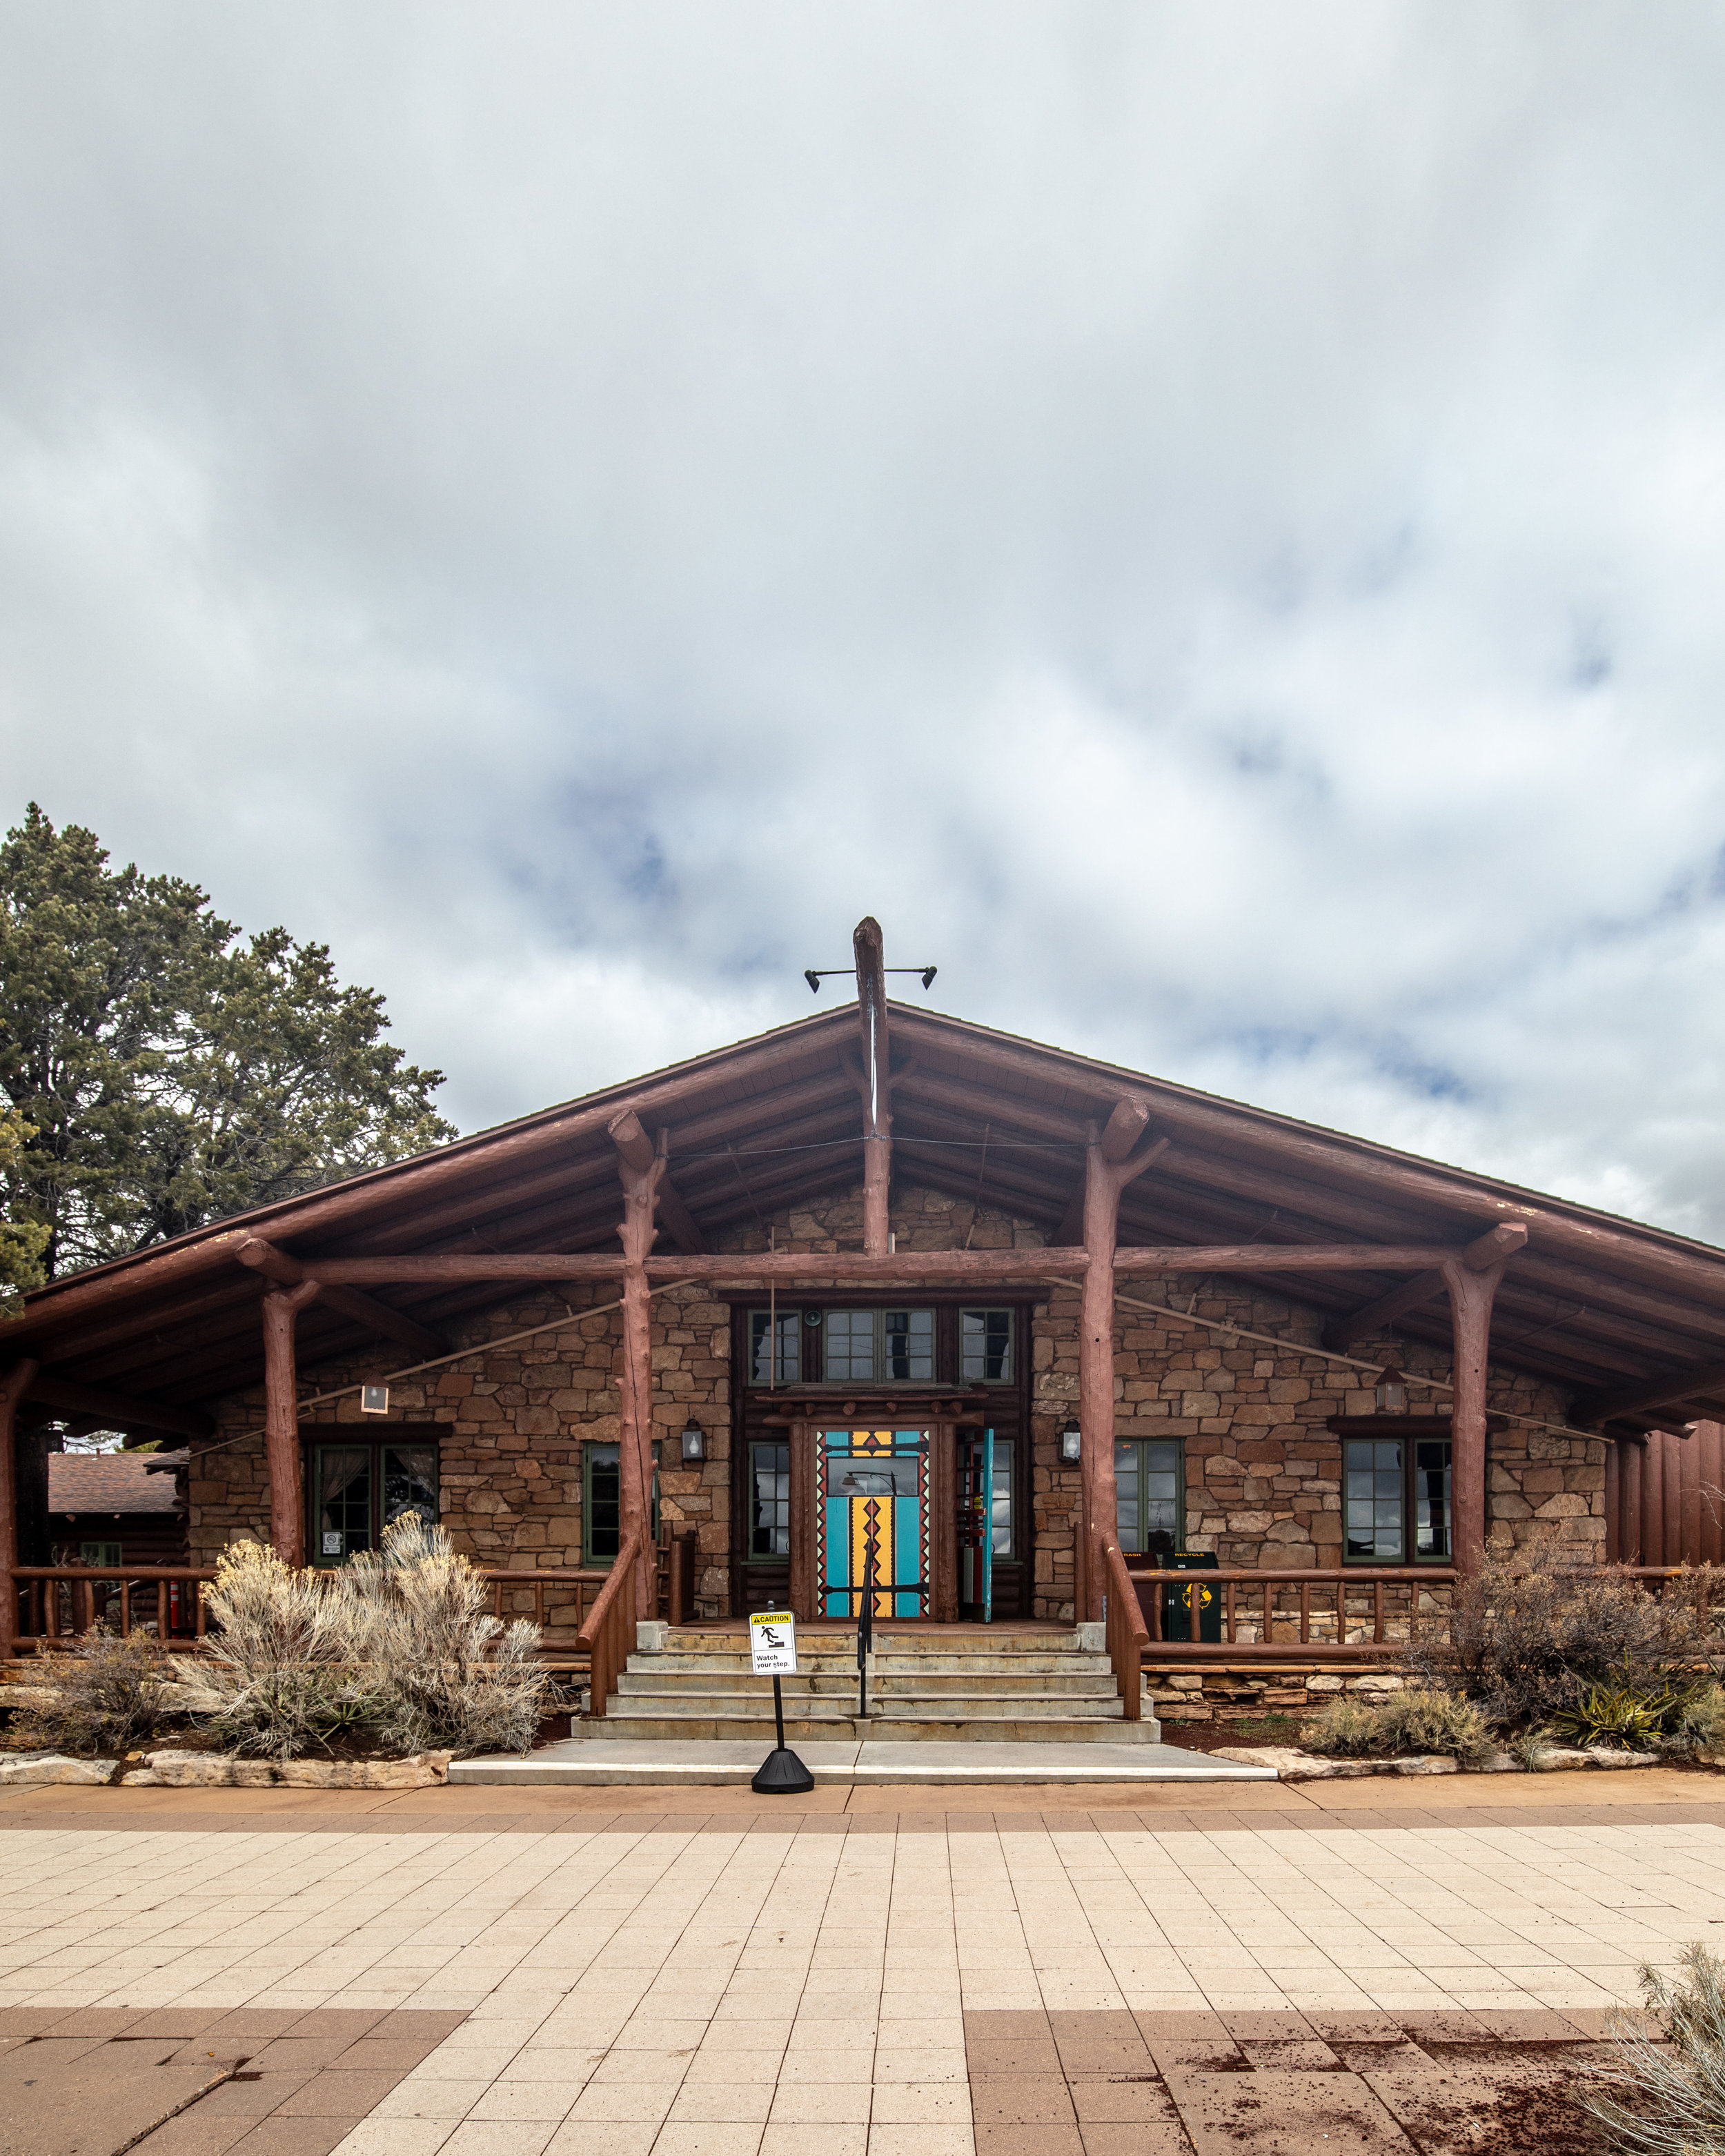 Where to stay in the Grand Canyon - Bright Angel Lodge